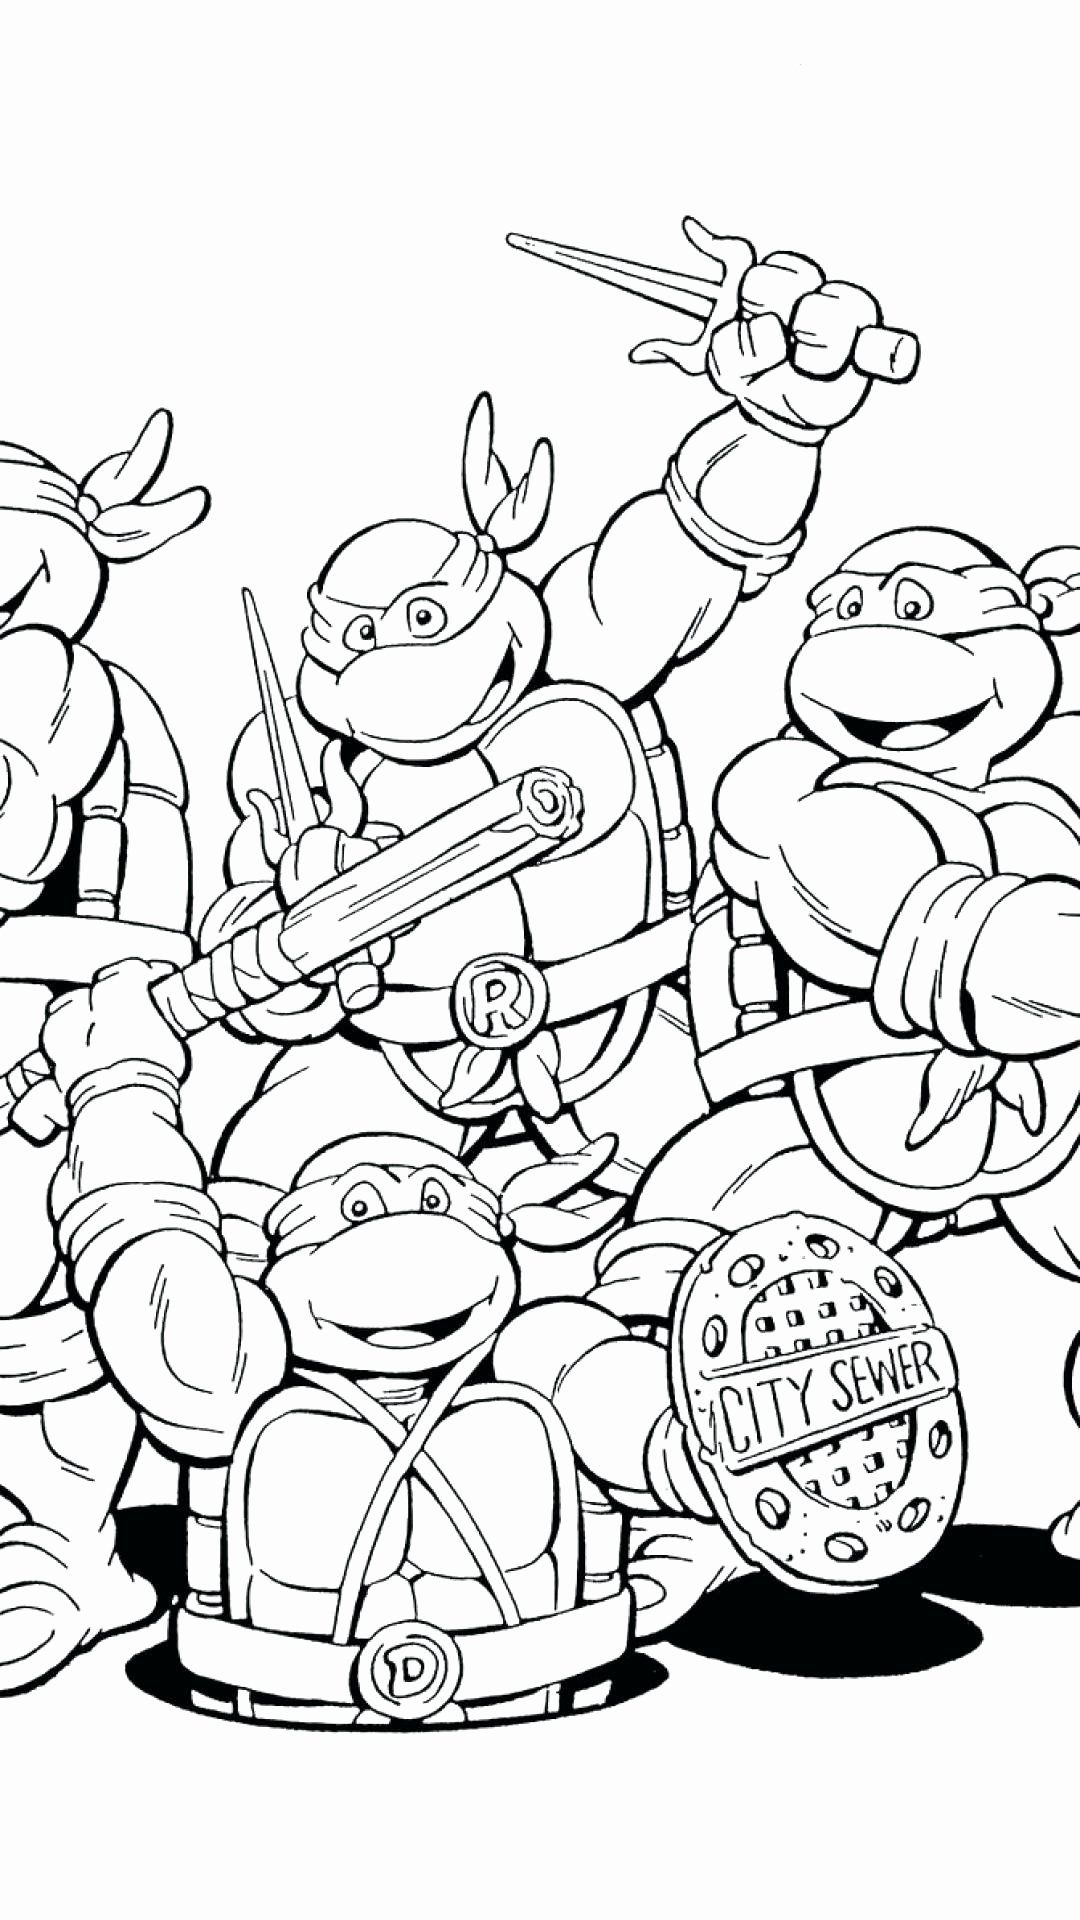 Ninja Turtle Coloring Book New Top 26 Great Teenage Mutant Ninja Turtles Coloring Pa Turtle Coloring Pages Ninja Turtle Coloring Pages Superhero Coloring Pages